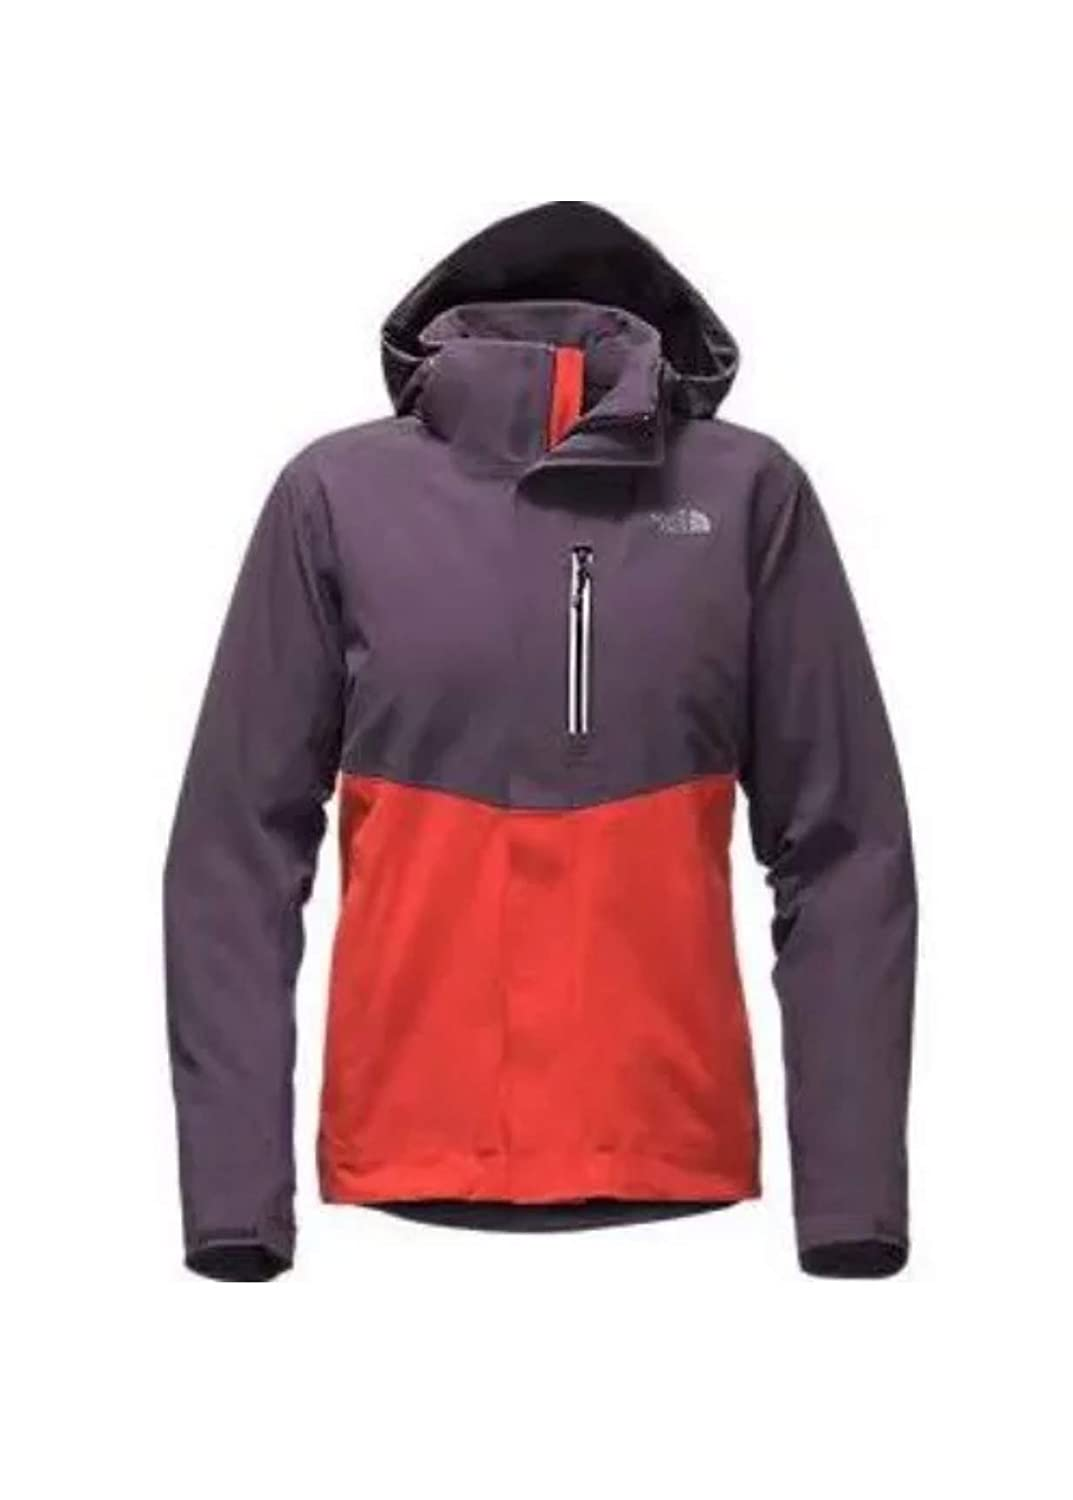 d08b8cc10 The North Face Women Apex Flex GTX Insulated Jacket All Weather ...